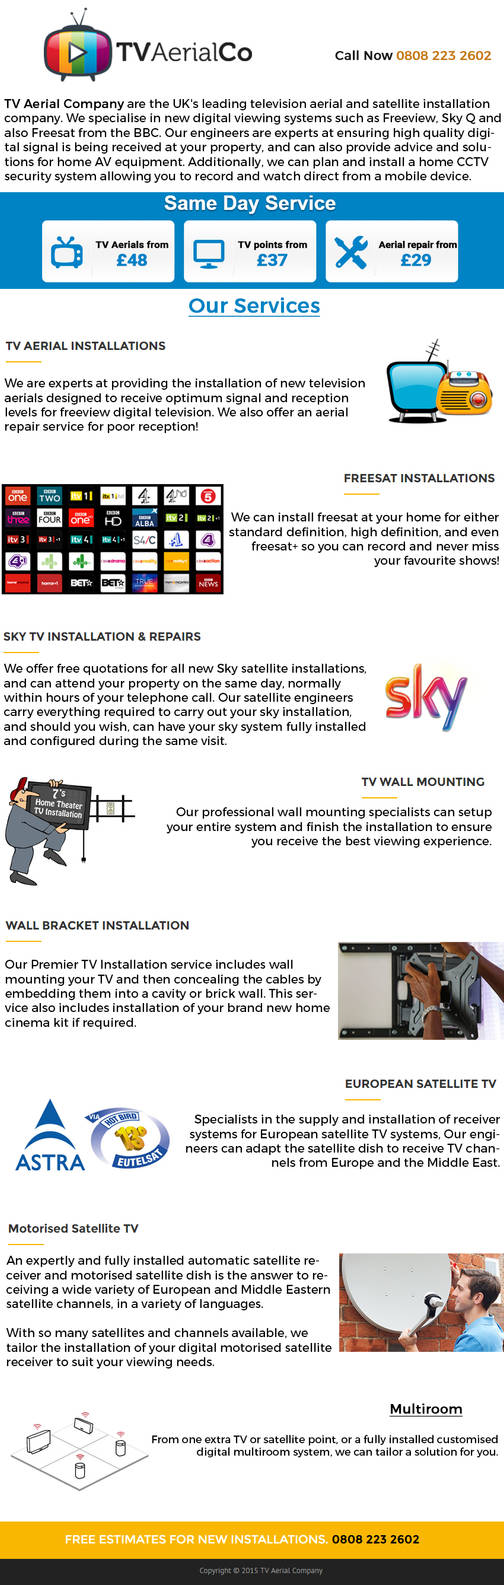 TV Aerial Company Infographics by danywald597